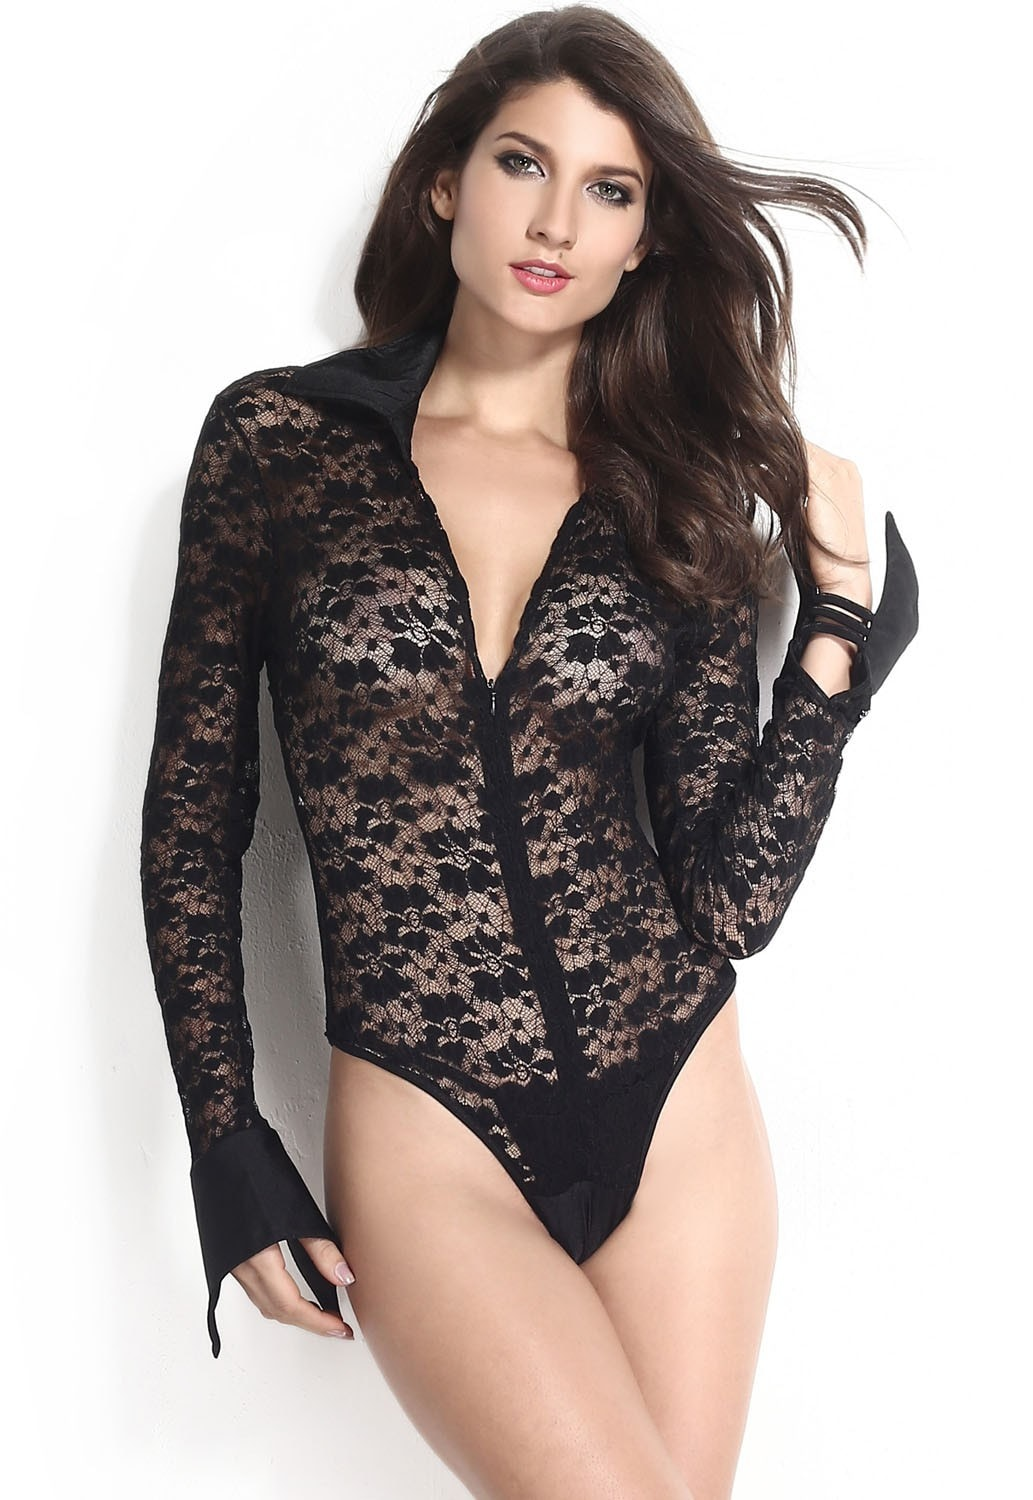 Black Bodysuits. Styles Found. Show off your sleek silhouette in one of our babin' black bodies, perfect for nights out with the girls or romantic meals out with your beau. We'll be scoring some serious style points with a black bodysuit from our smokin' selection, no matter how it's styled. Plus Size Black Scallop Lace Long Sleeve.